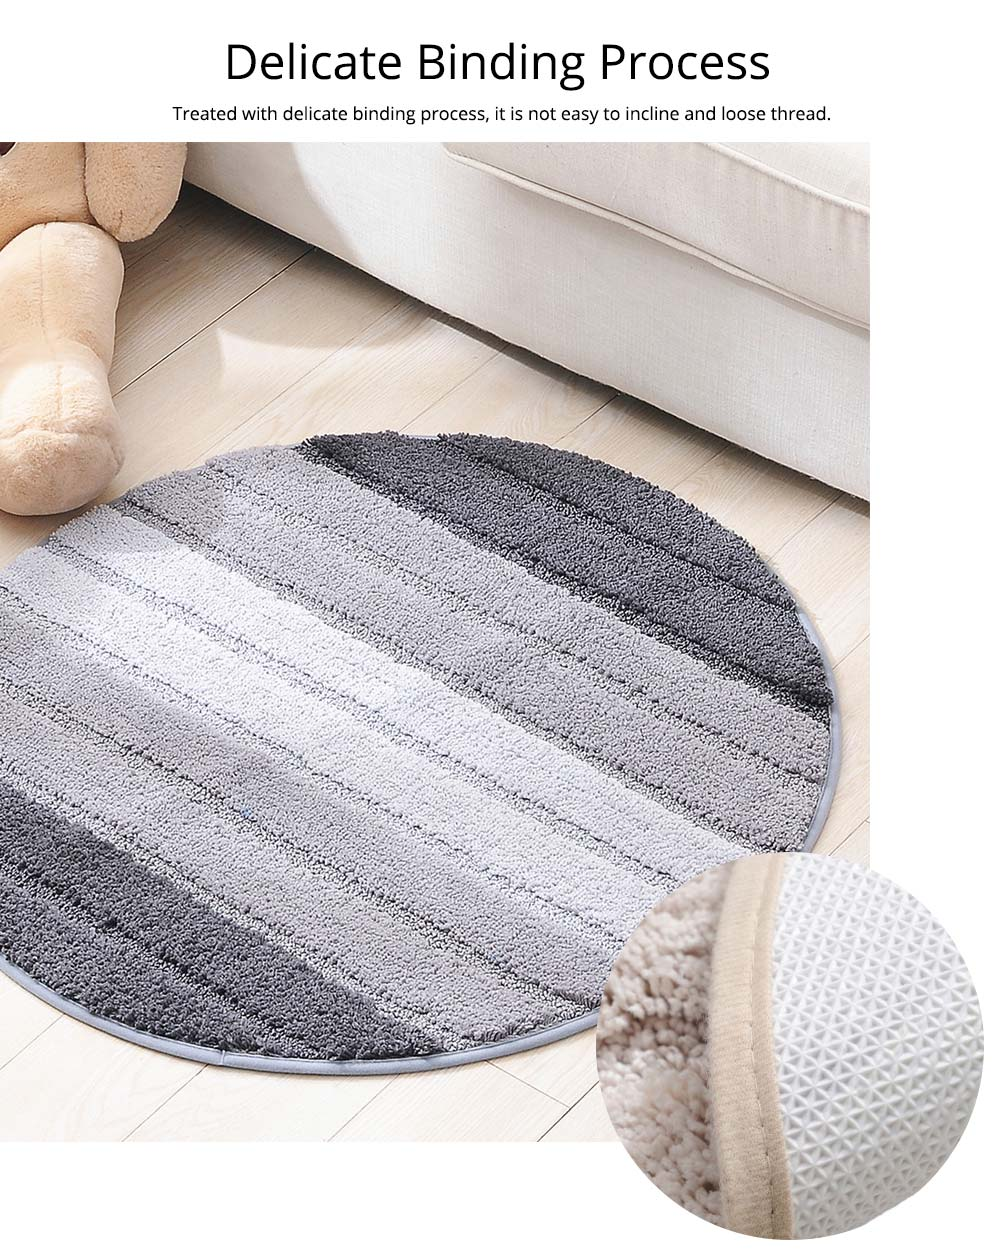 Round Color Rug, Shaggy Fluffy Rugs Carpet, Non-slip Floor Mat for Living Room, Bedroom 10